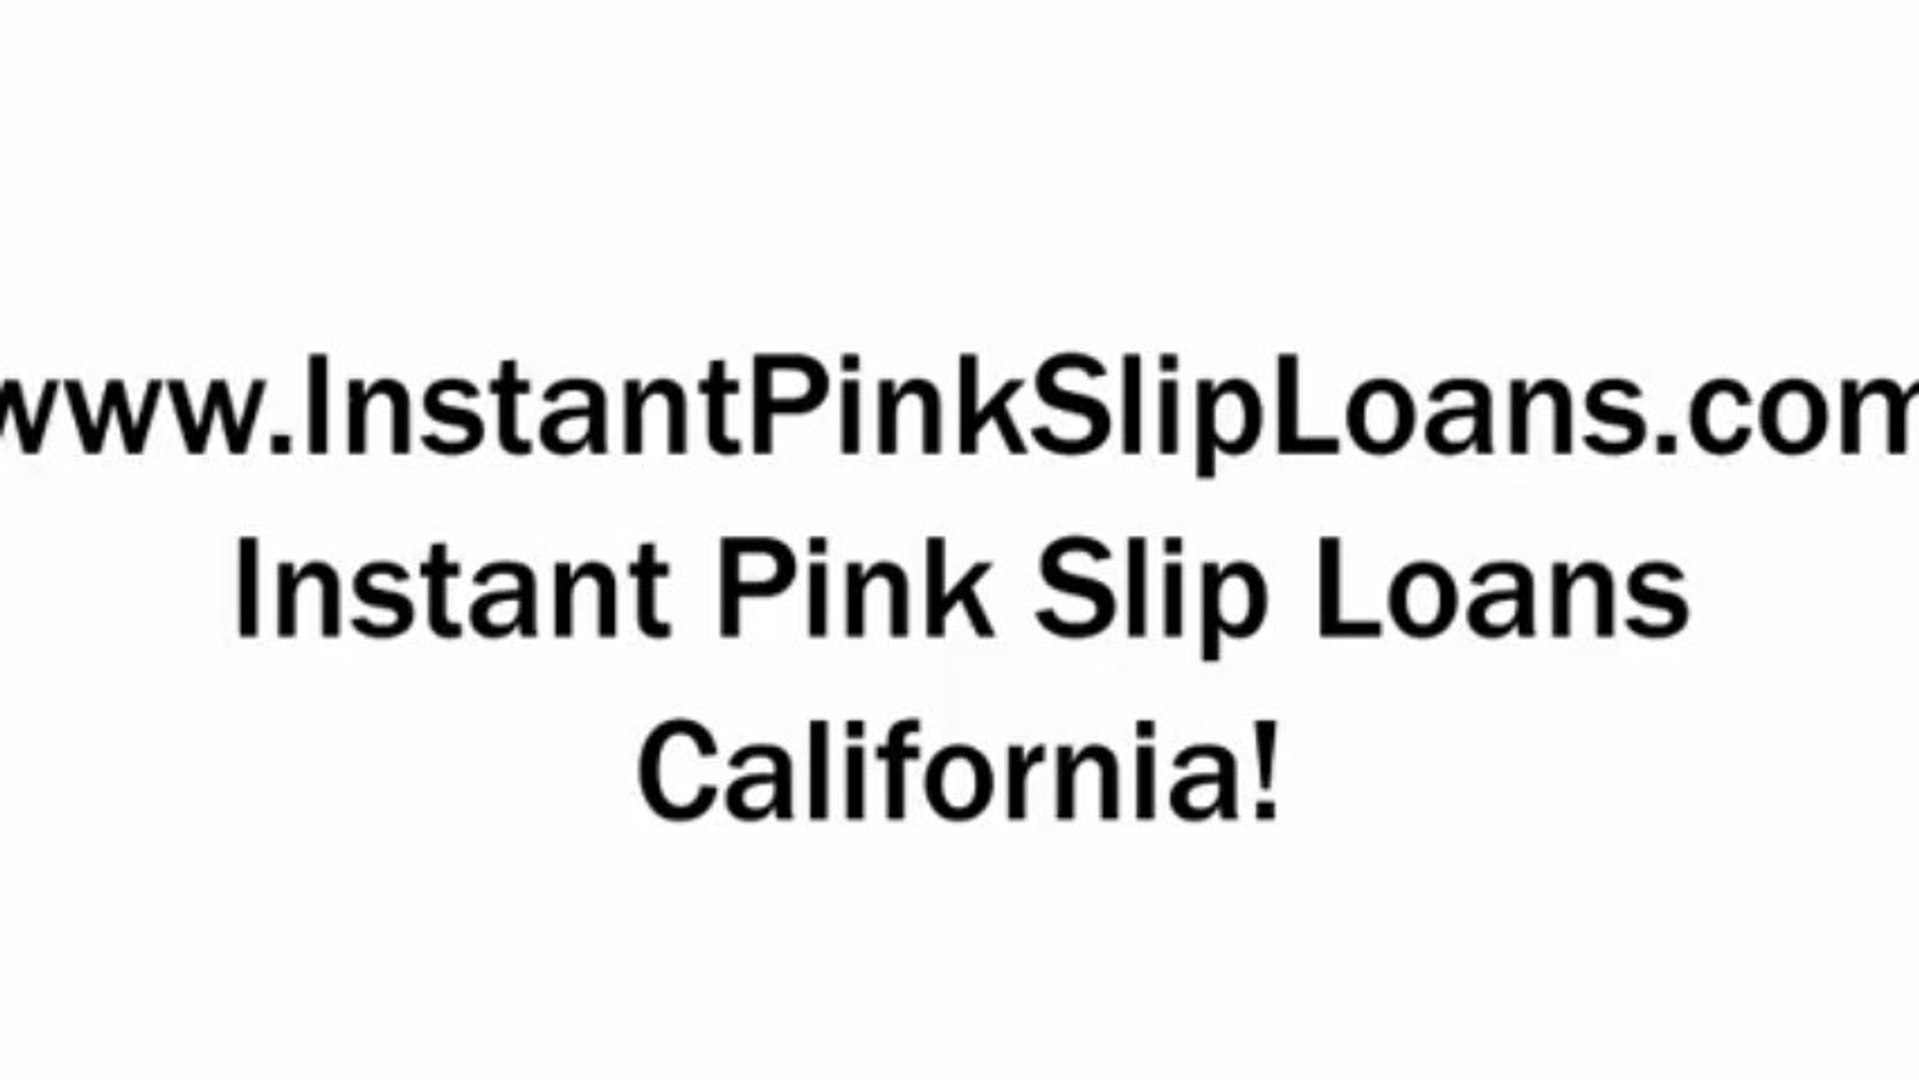 Best Instant Pink Loans California. Instant Cash For Car Loans California.